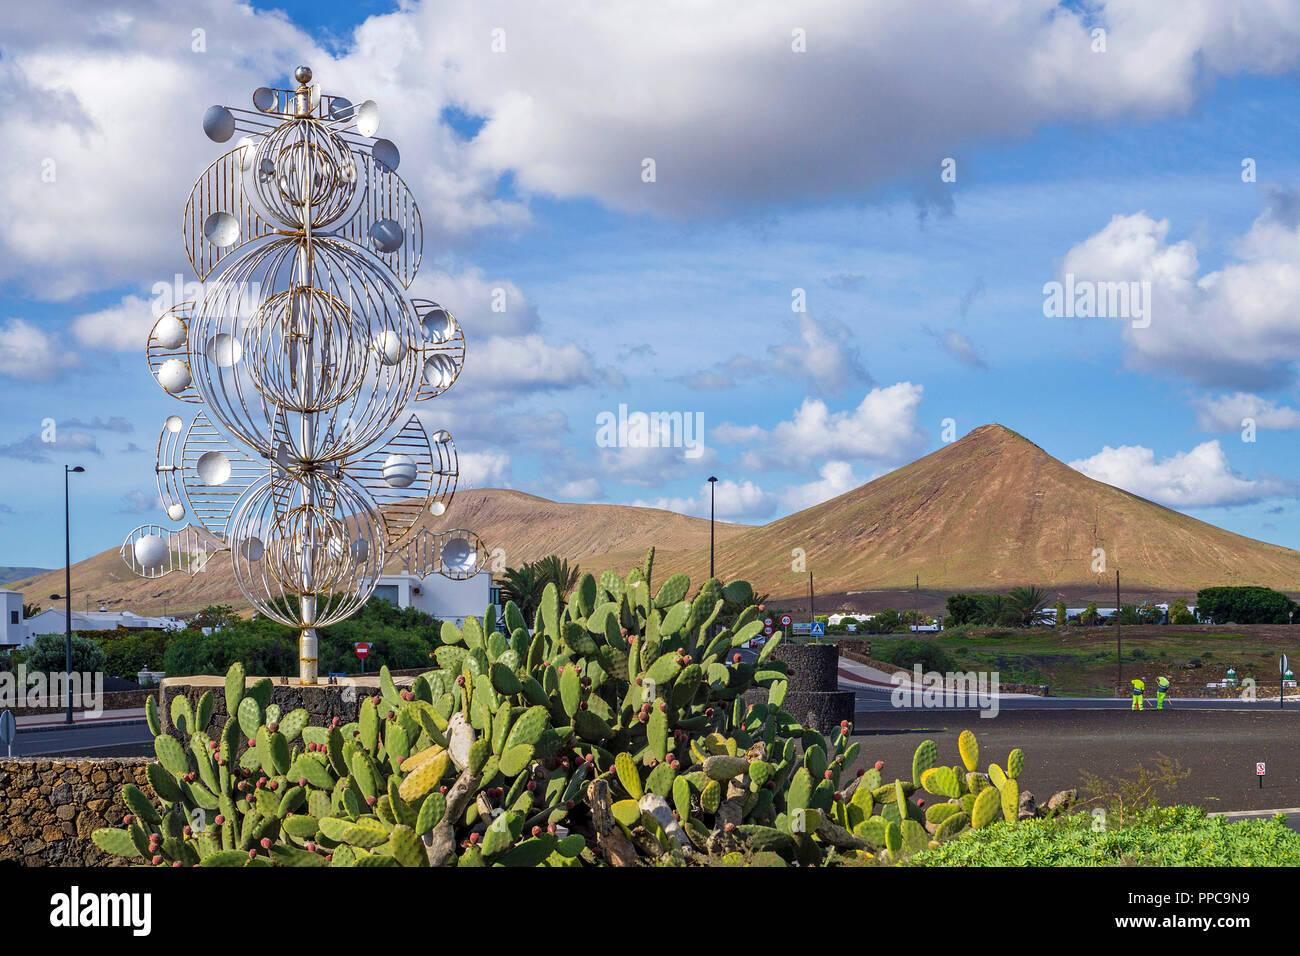 Silver wind chime by Cesar Manrique at Tahiche, Lanzarote, Canary Islands, Spain Stock Photo